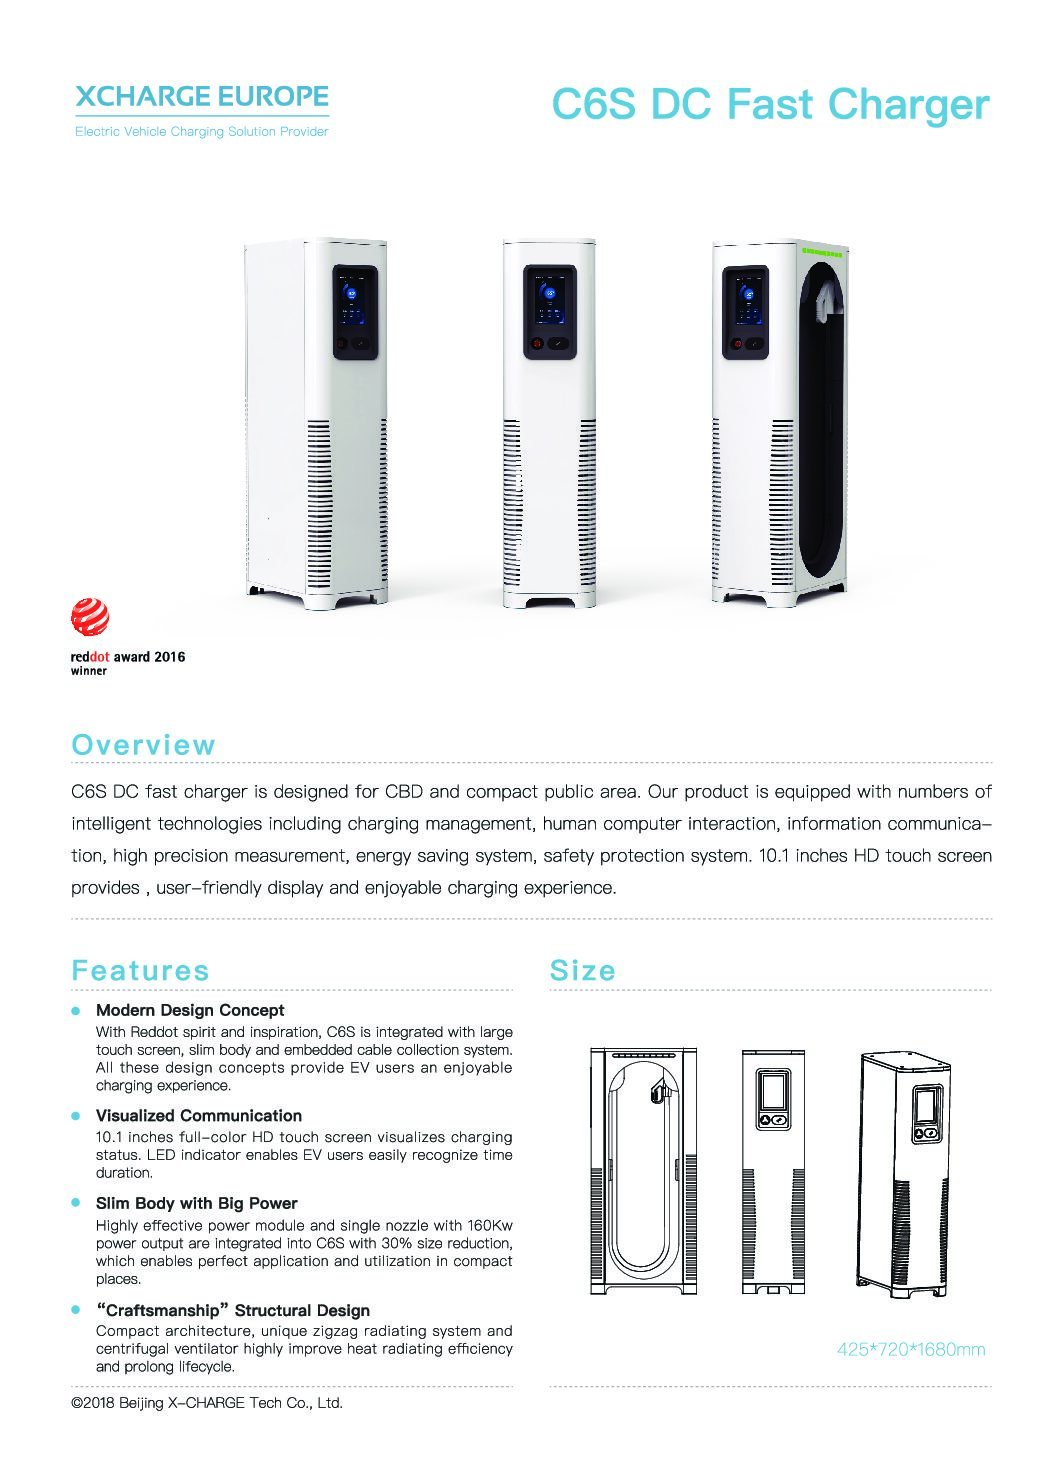 XCHARGE C6S DC Fast Charger (China)